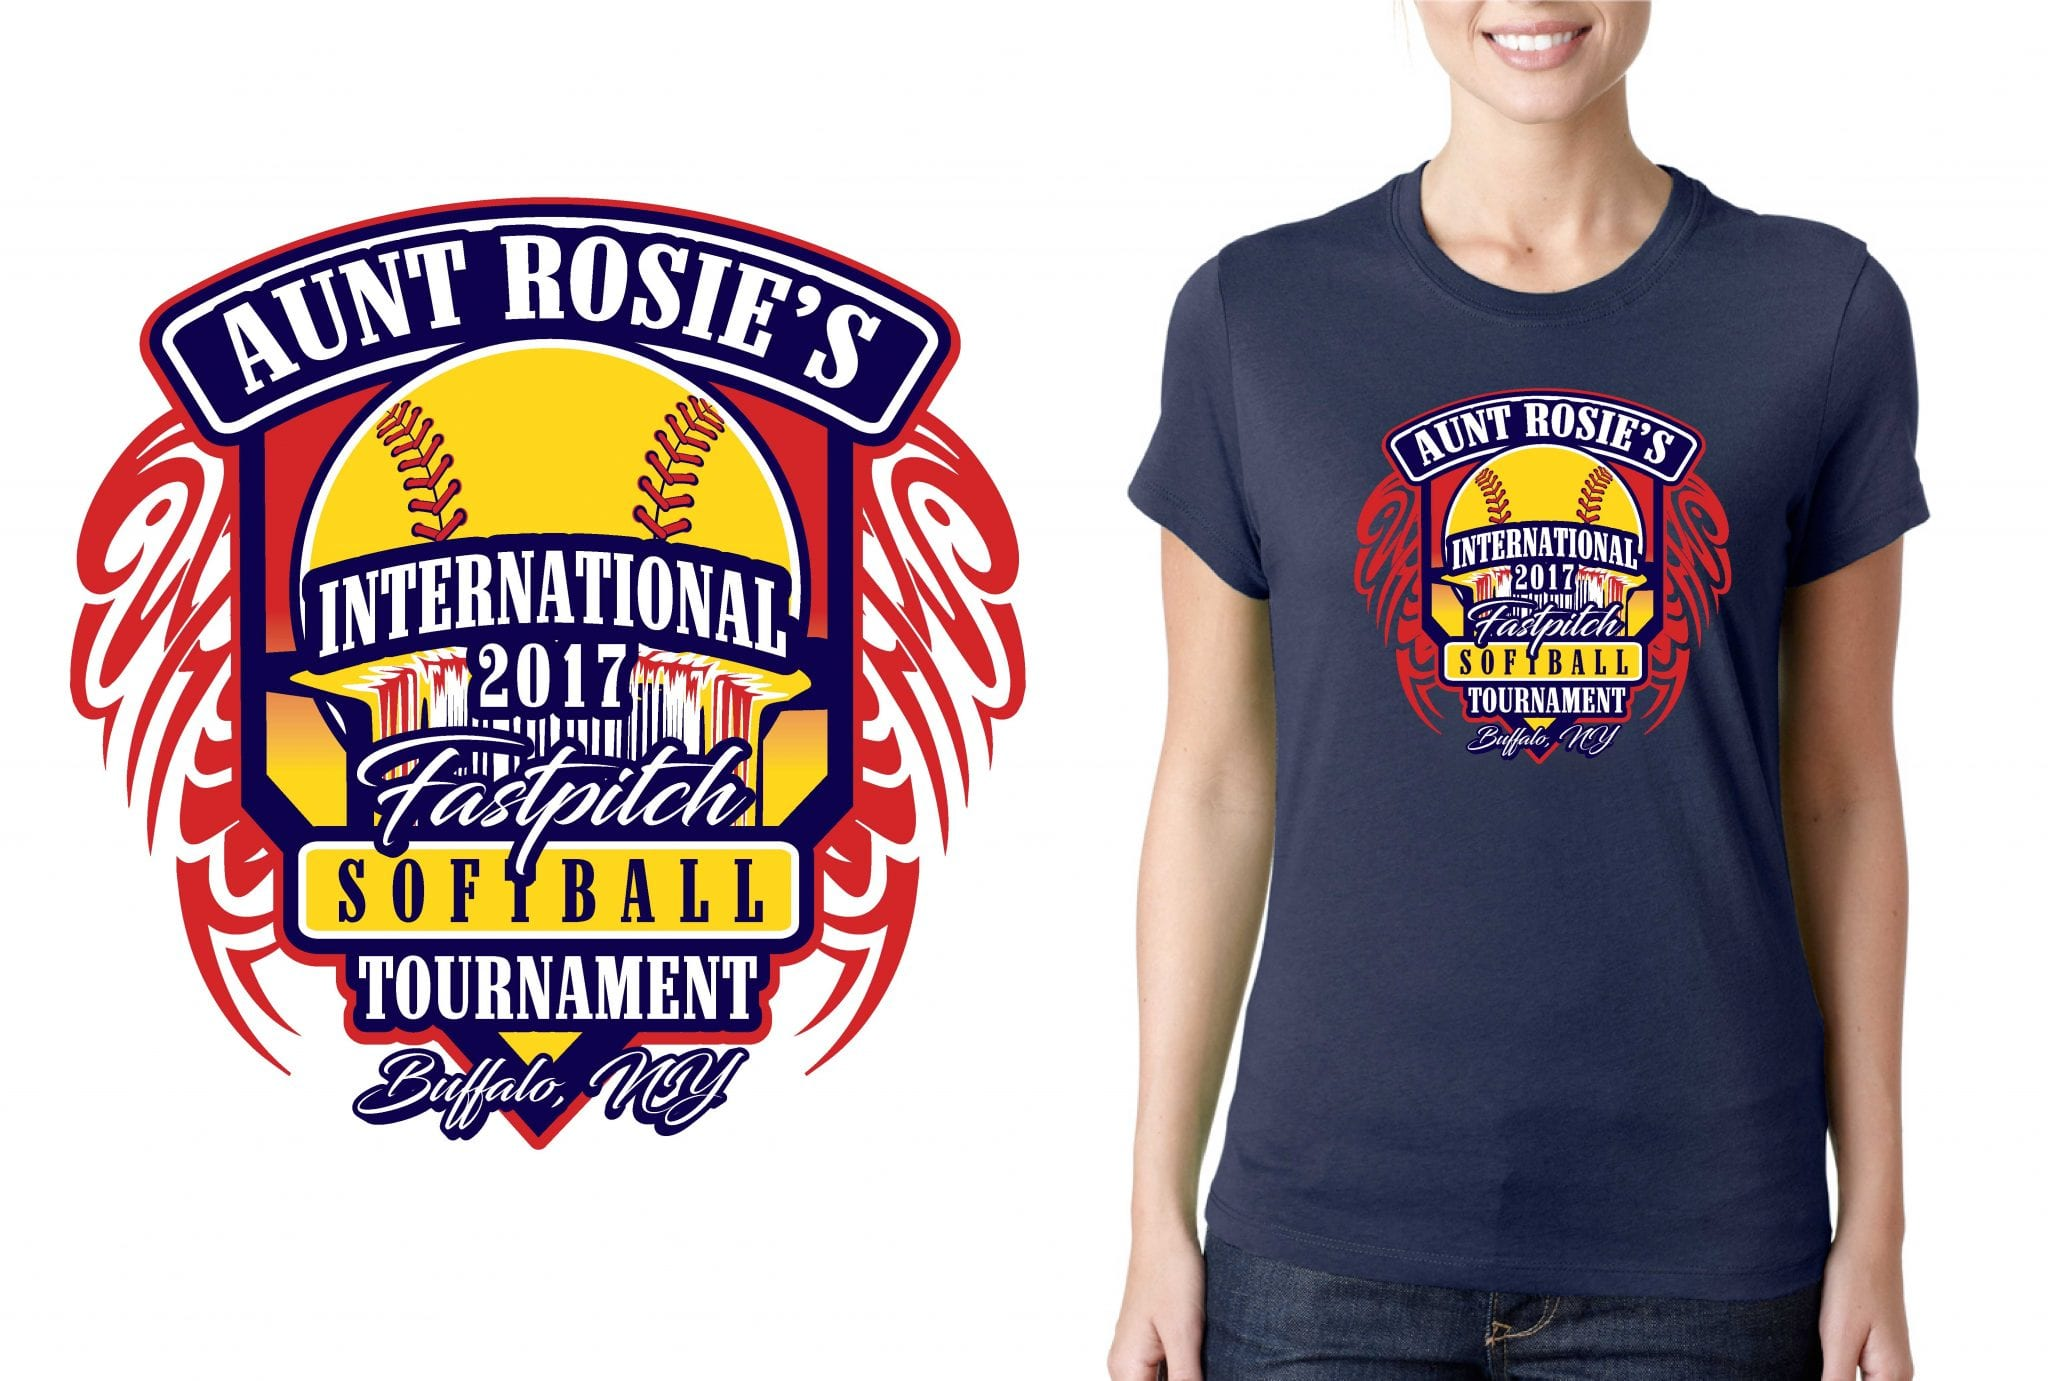 SOFTBALL LOGO for Aunt-Rosies-International-Fast-Pitch-Softball-Tournament T-SHIRT UrArtStudio